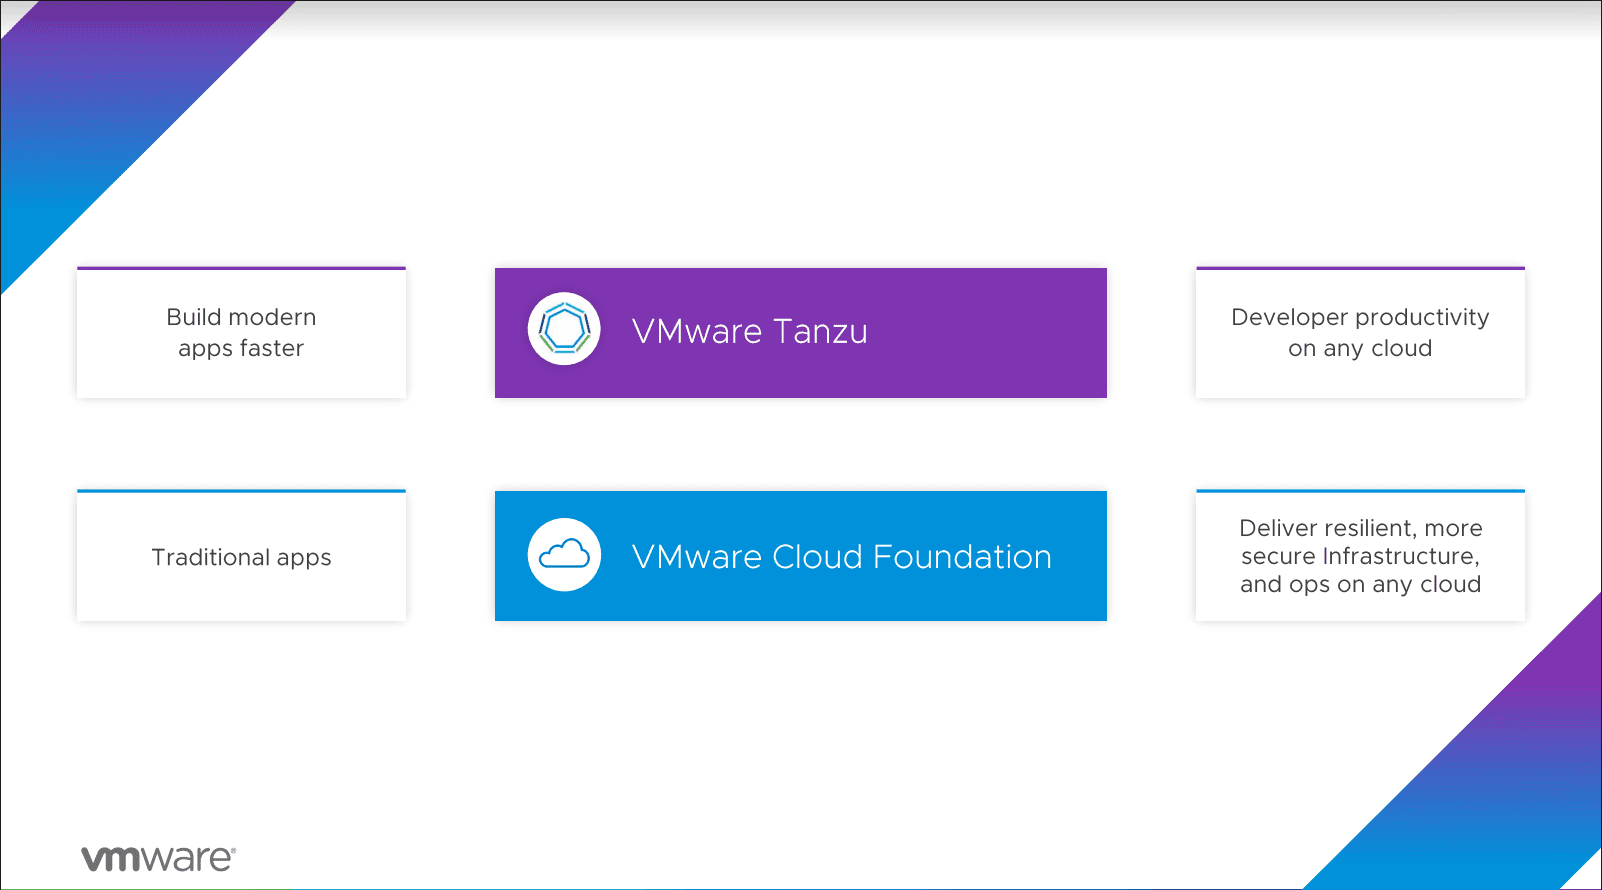 Vmware cloud is built on top of vmware cloud foundation and vmware tanzu